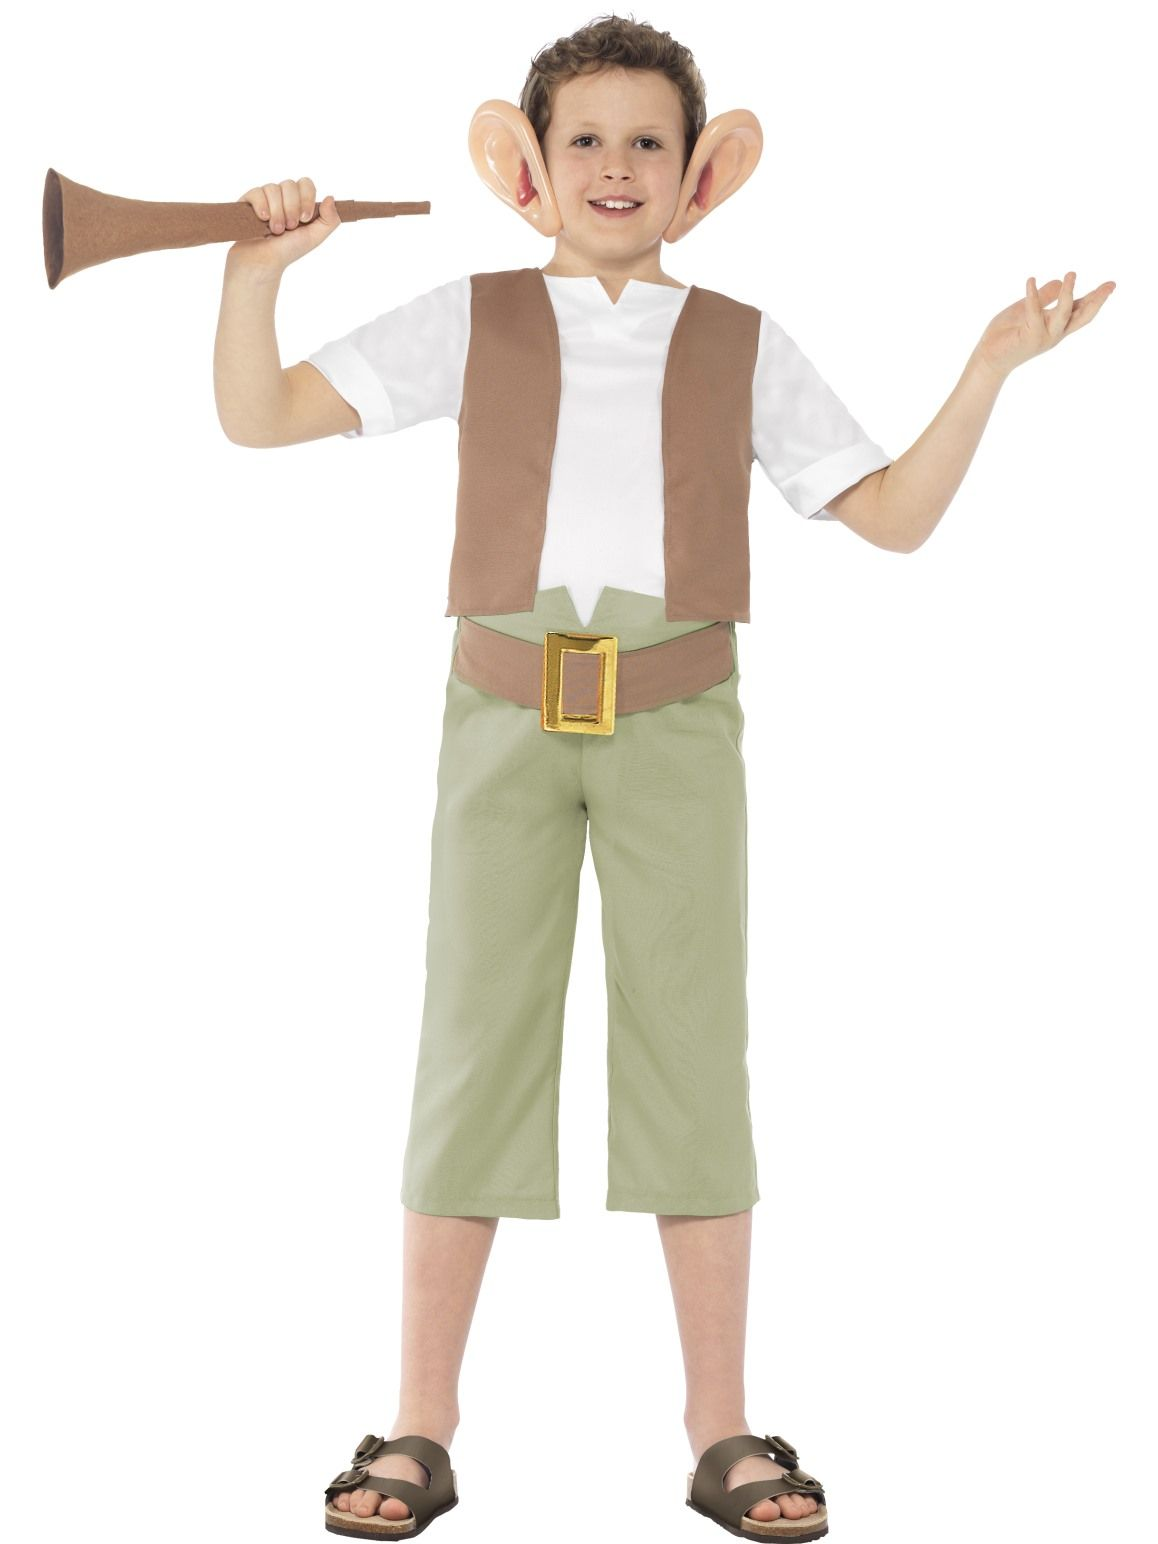 The Big Friendly Giant Roald Dahl Child Costume - Buy Online Only